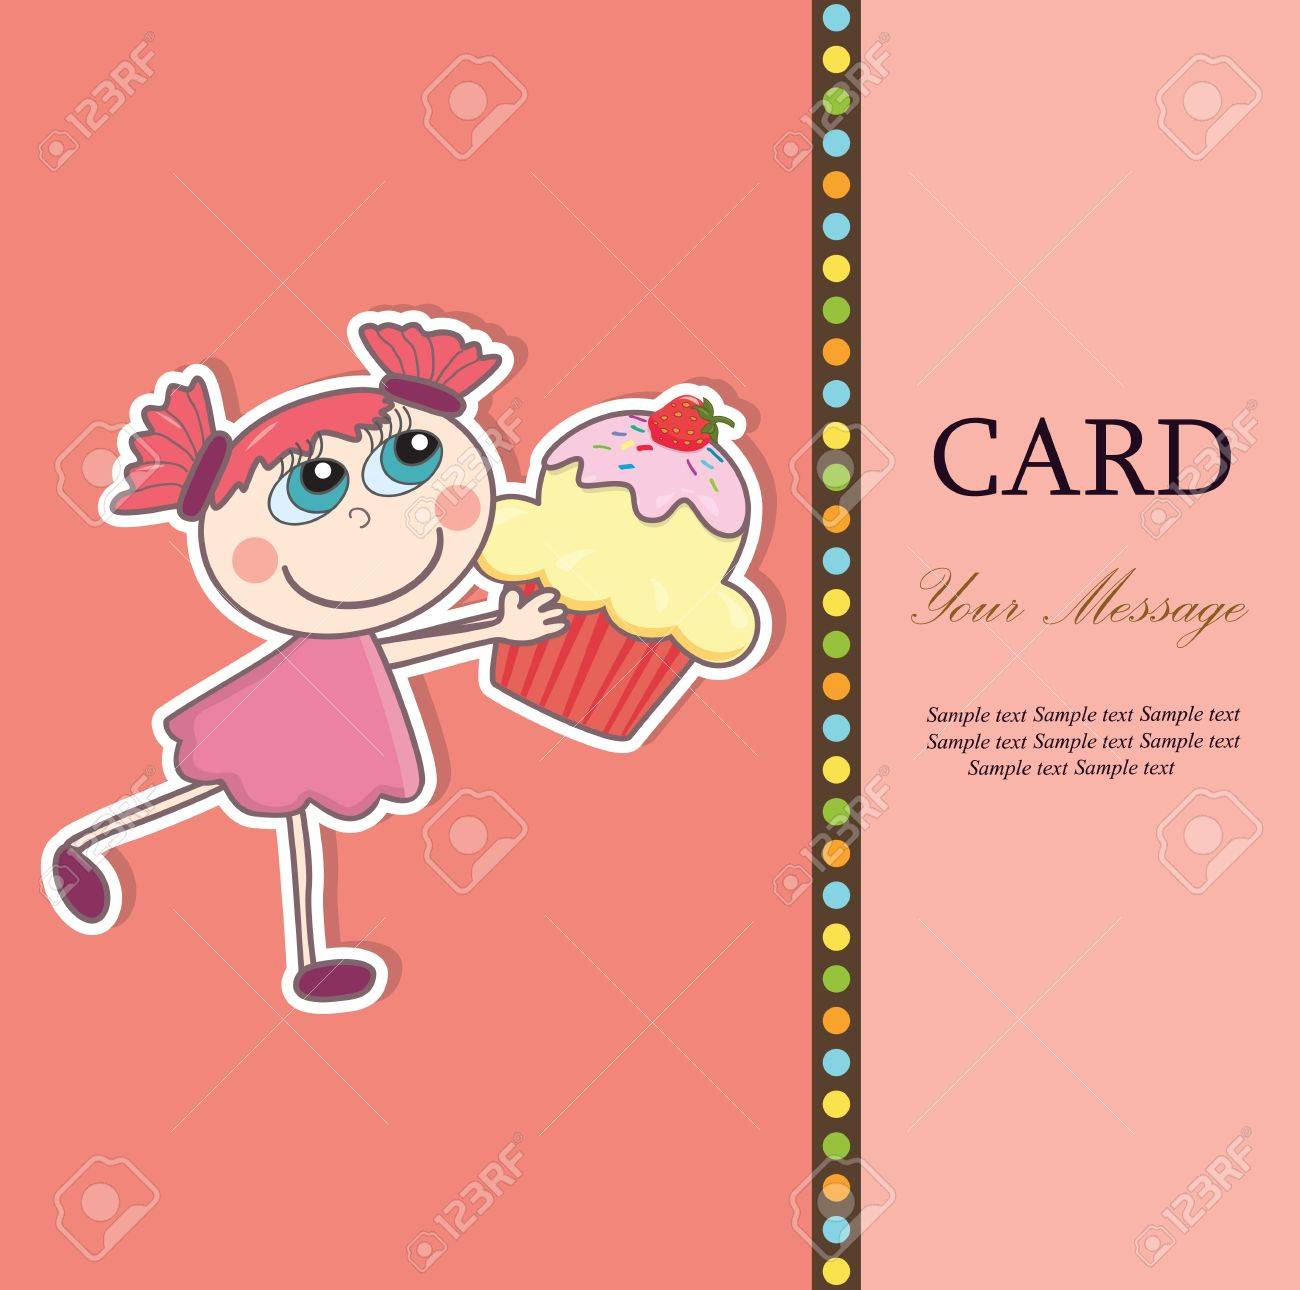 Little girl with a cupcake  Greeting card  illustration Stock Vector - 15385467